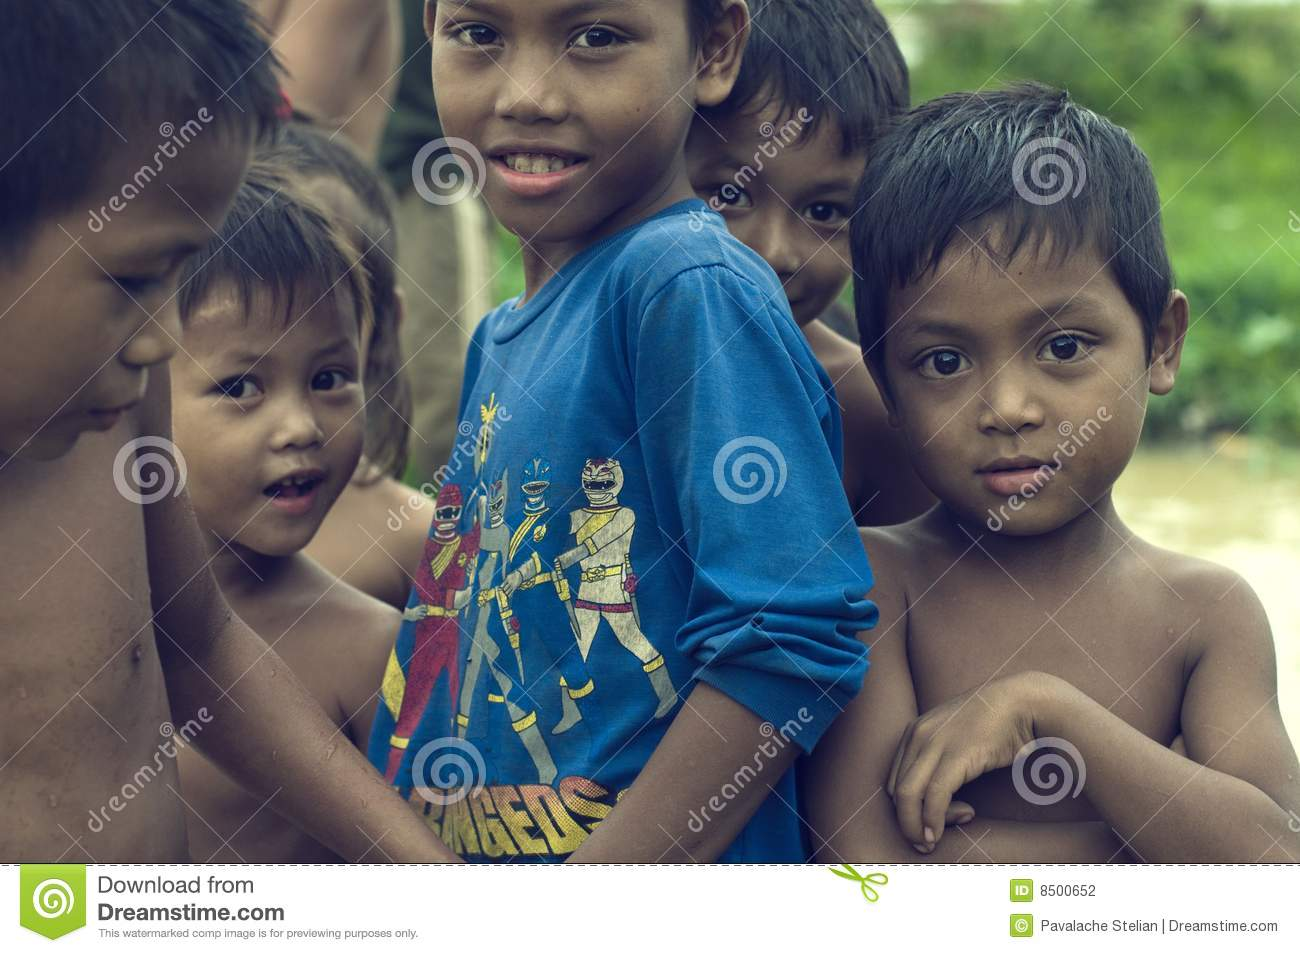 Poor cambodian kids smiling and playing